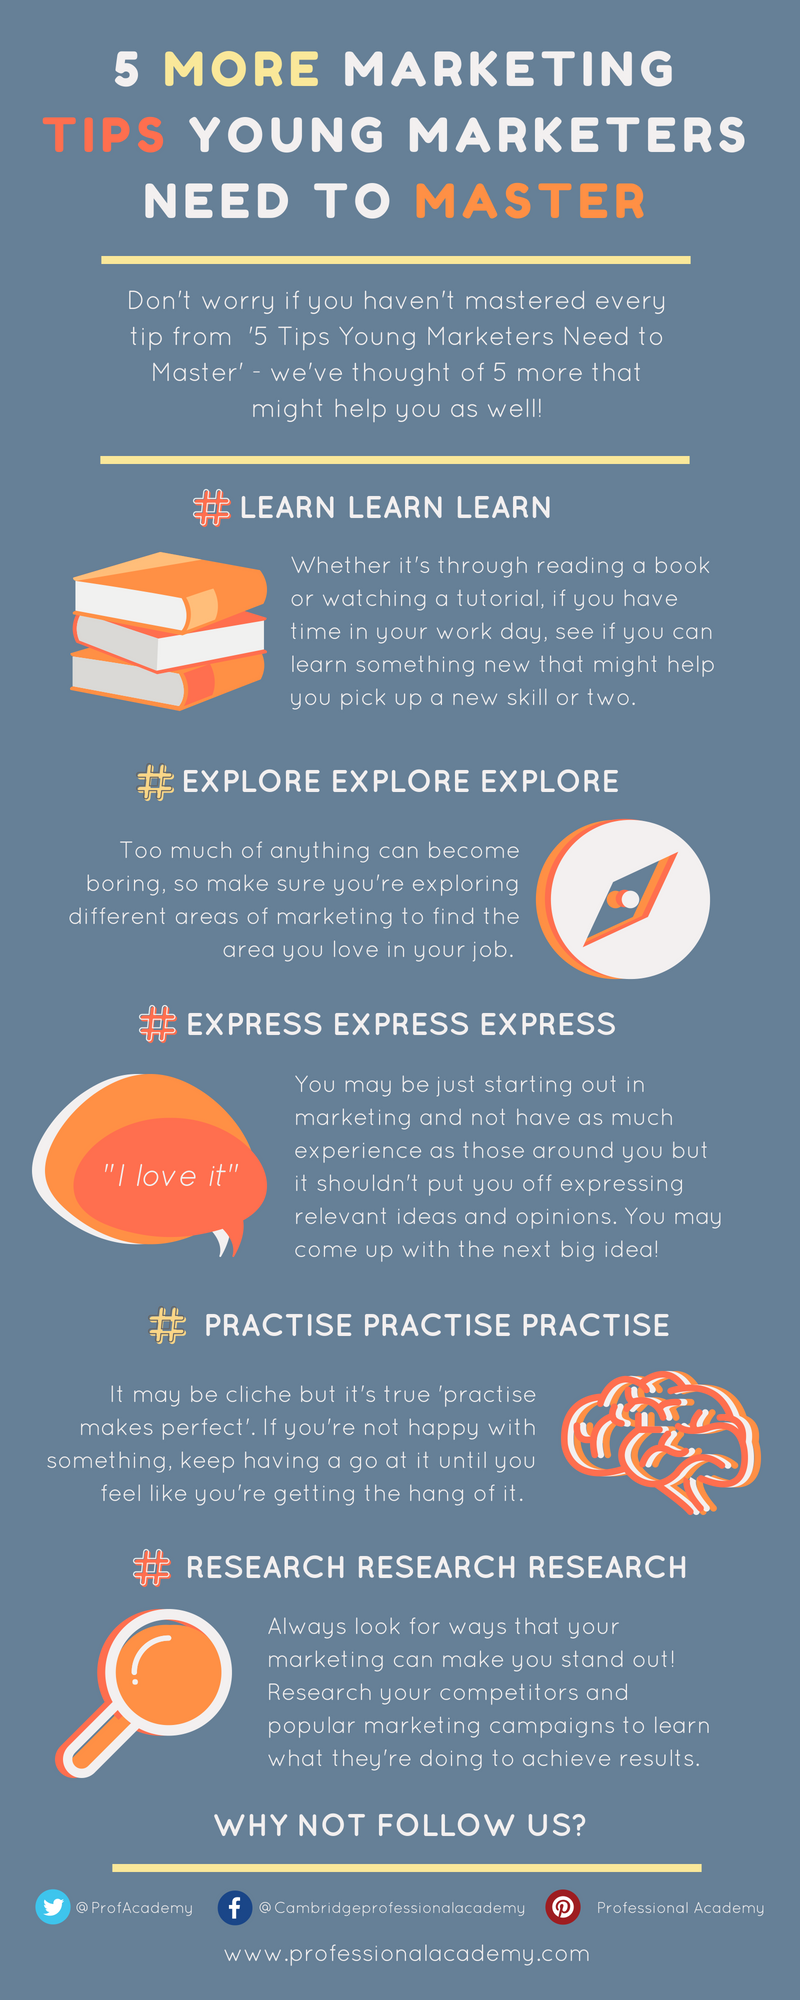 5 More Marketing Tips Young Marketers Need to Master - Infographic